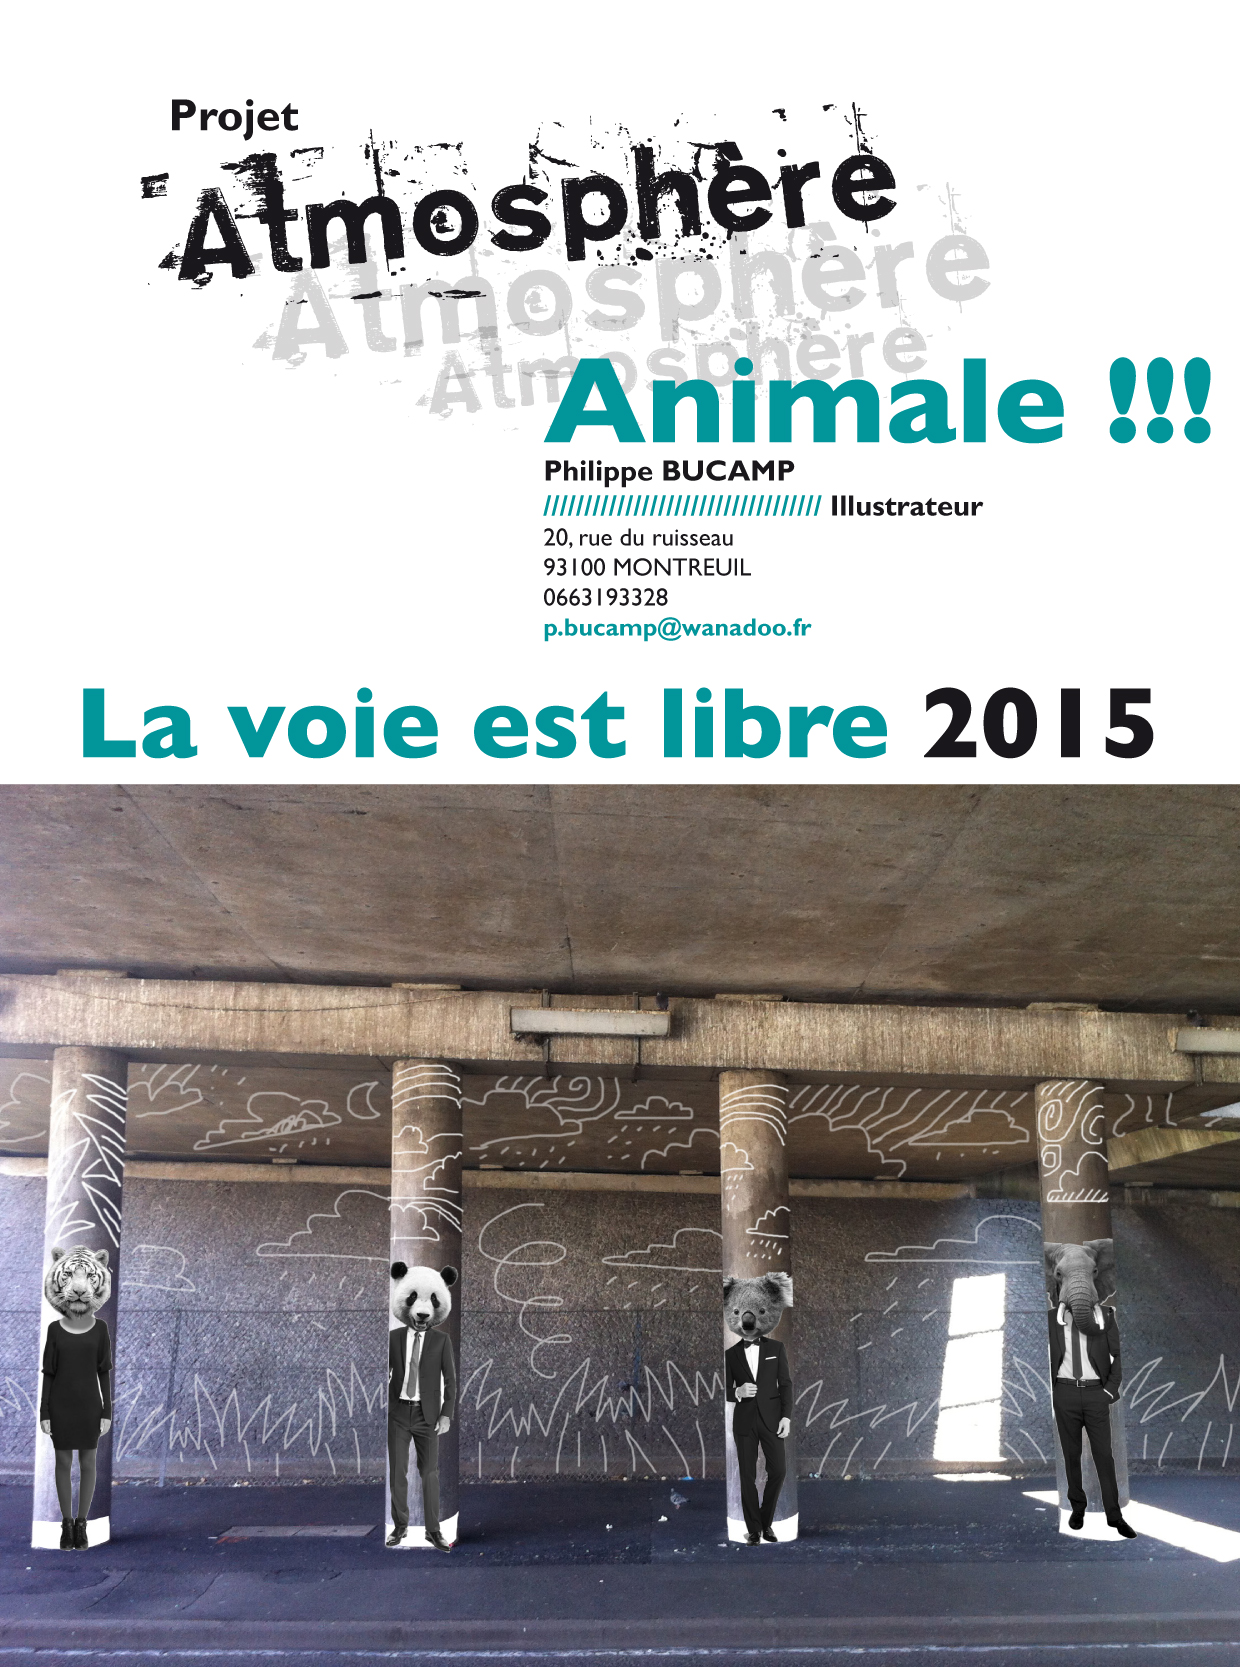 PROJET-ATMOSPHERE-animale-1